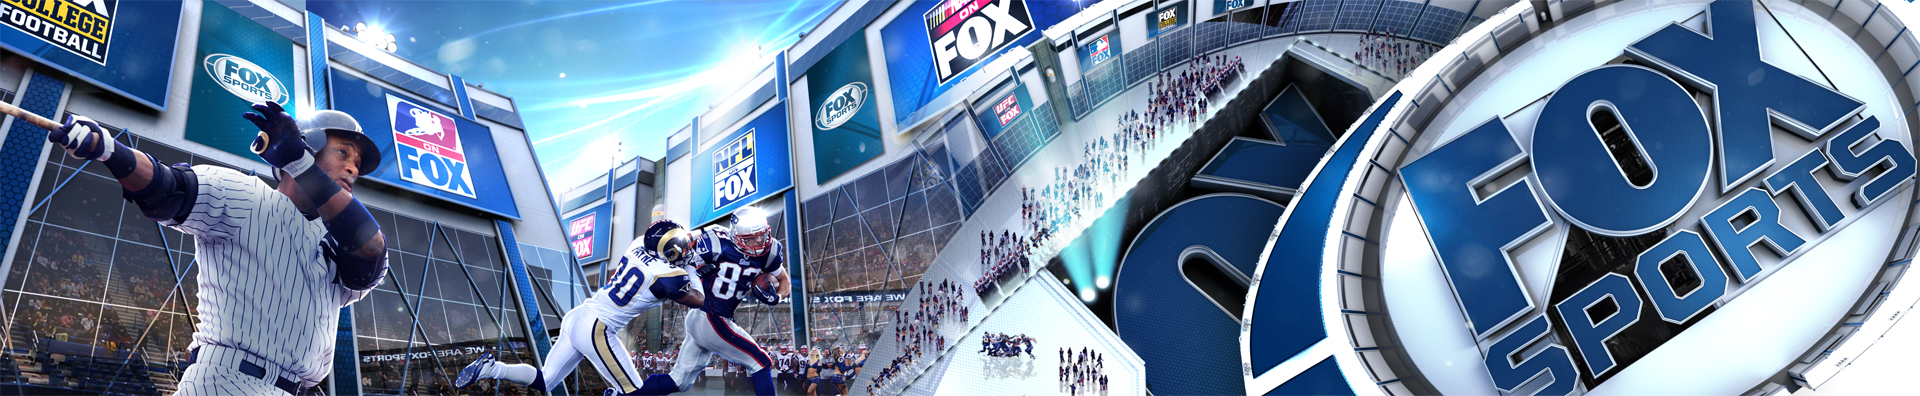 FOX Sports Network Package Mood Board - May 2013